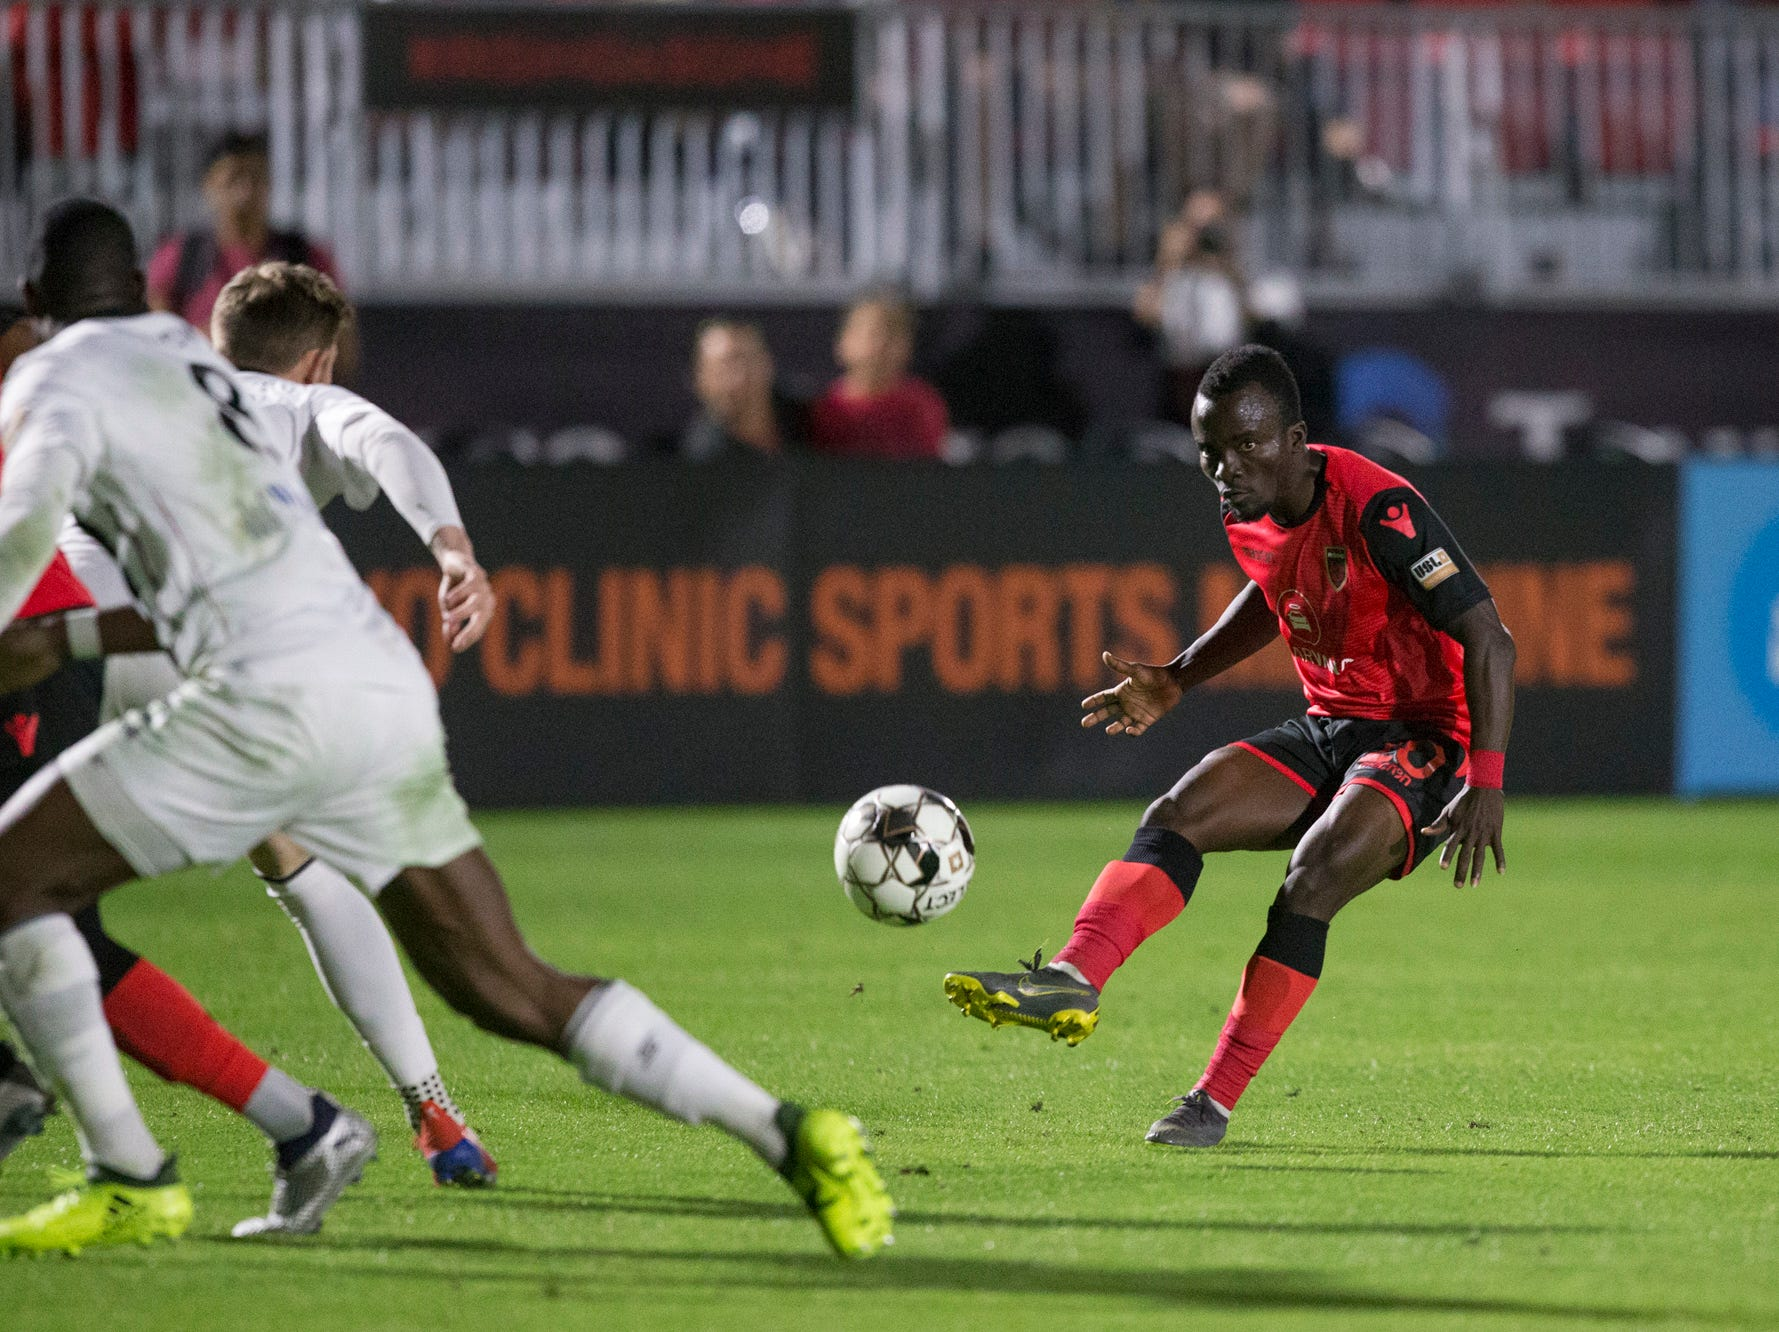 Phoenix Rising's Solomon Asante attempts a shot against Colorado Springs in the second half on Saturday, Mar. 30, 2019, at Casino Arizona Field in Tempe, Ariz.